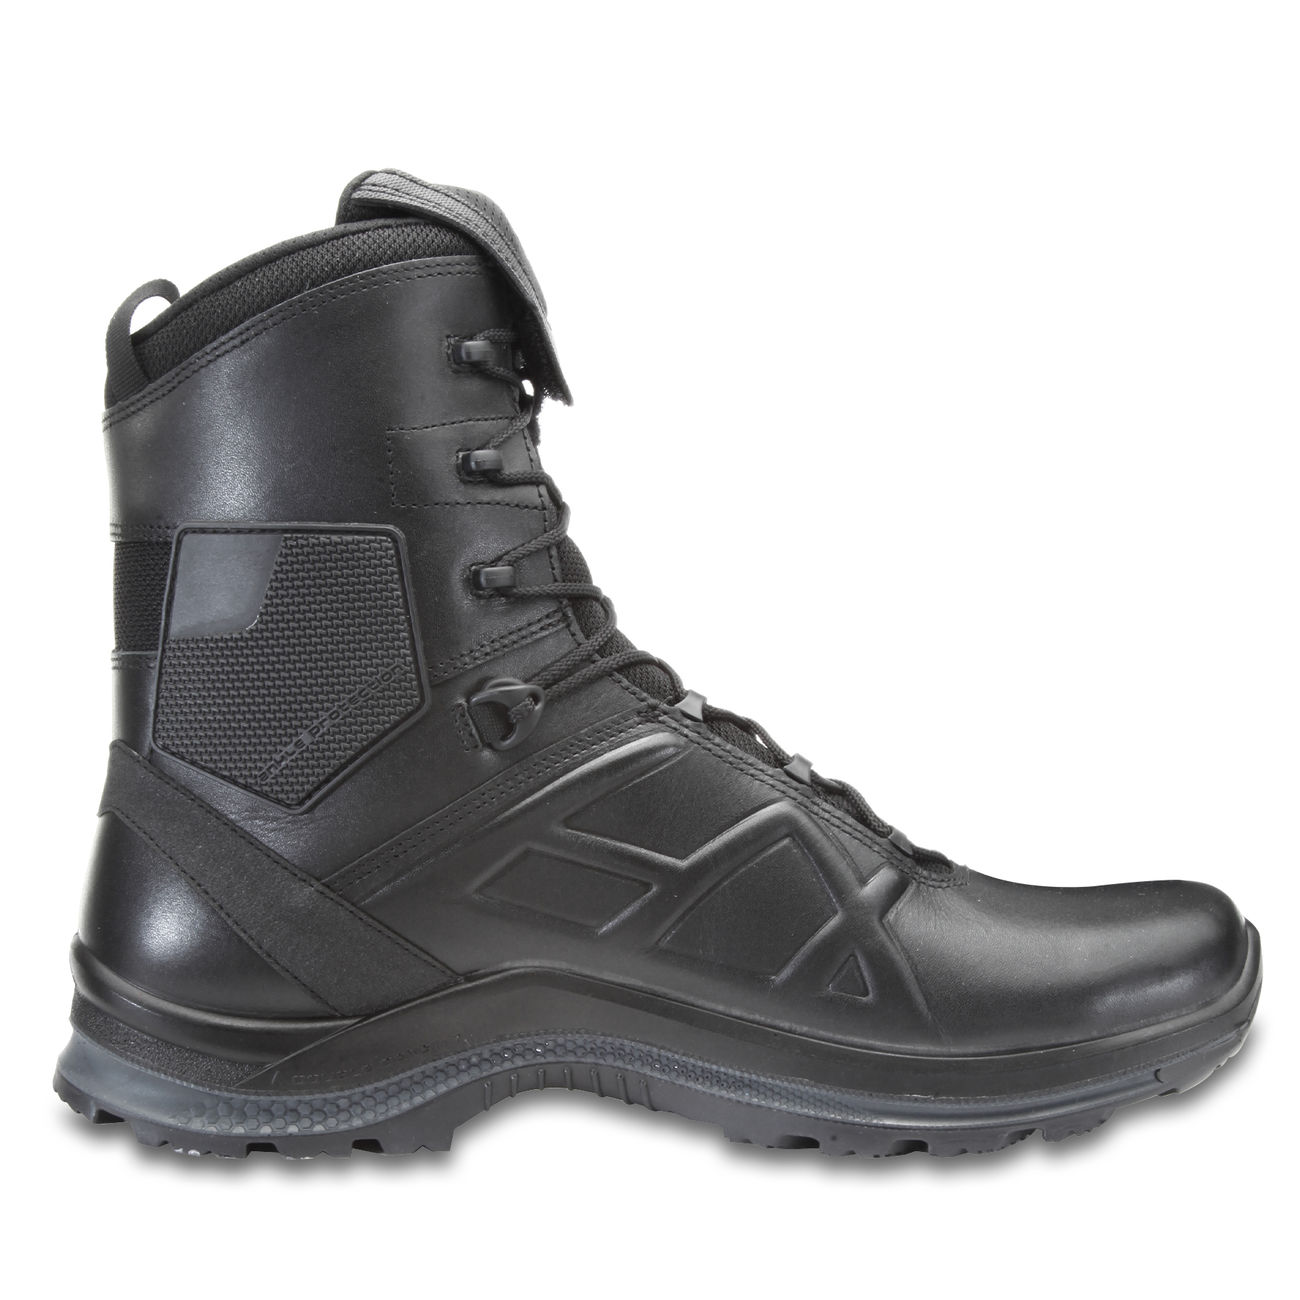 Haix Stiefel Black Eagle Tactical 2.0 High schwarz 5